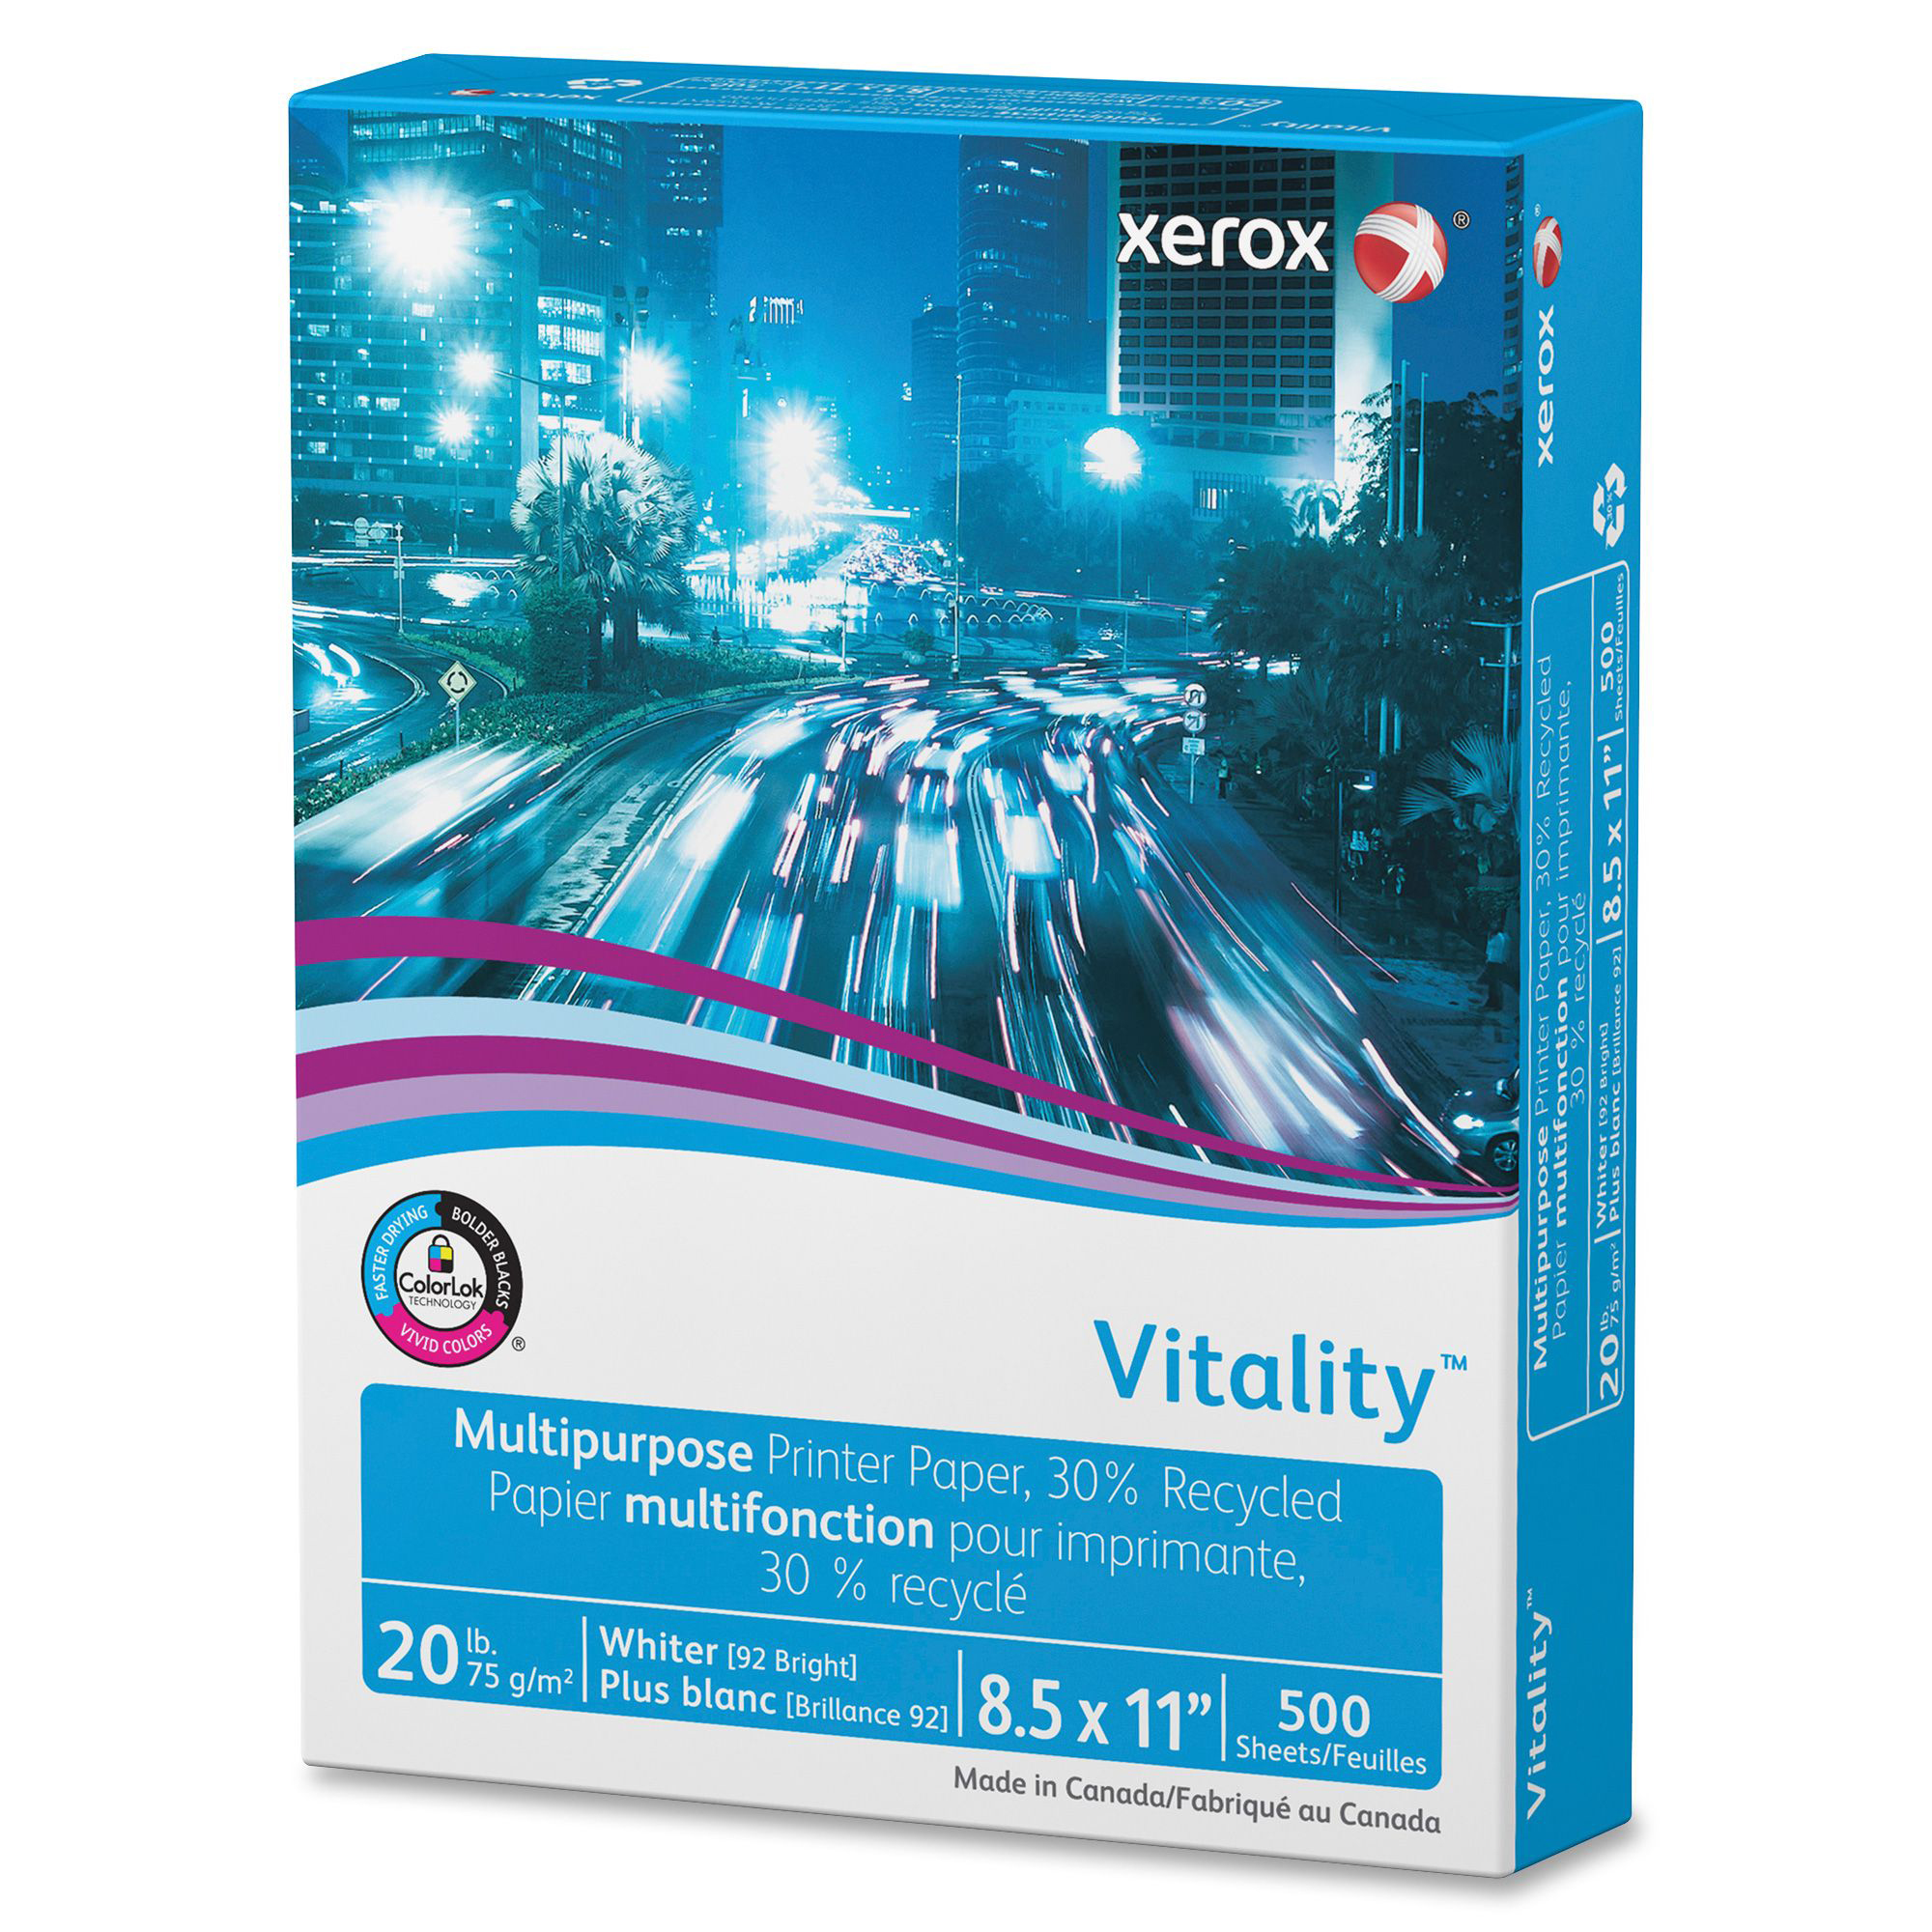 Xerox 3R06296 Vitality 30% Recycled Multipurpose Printer Paper